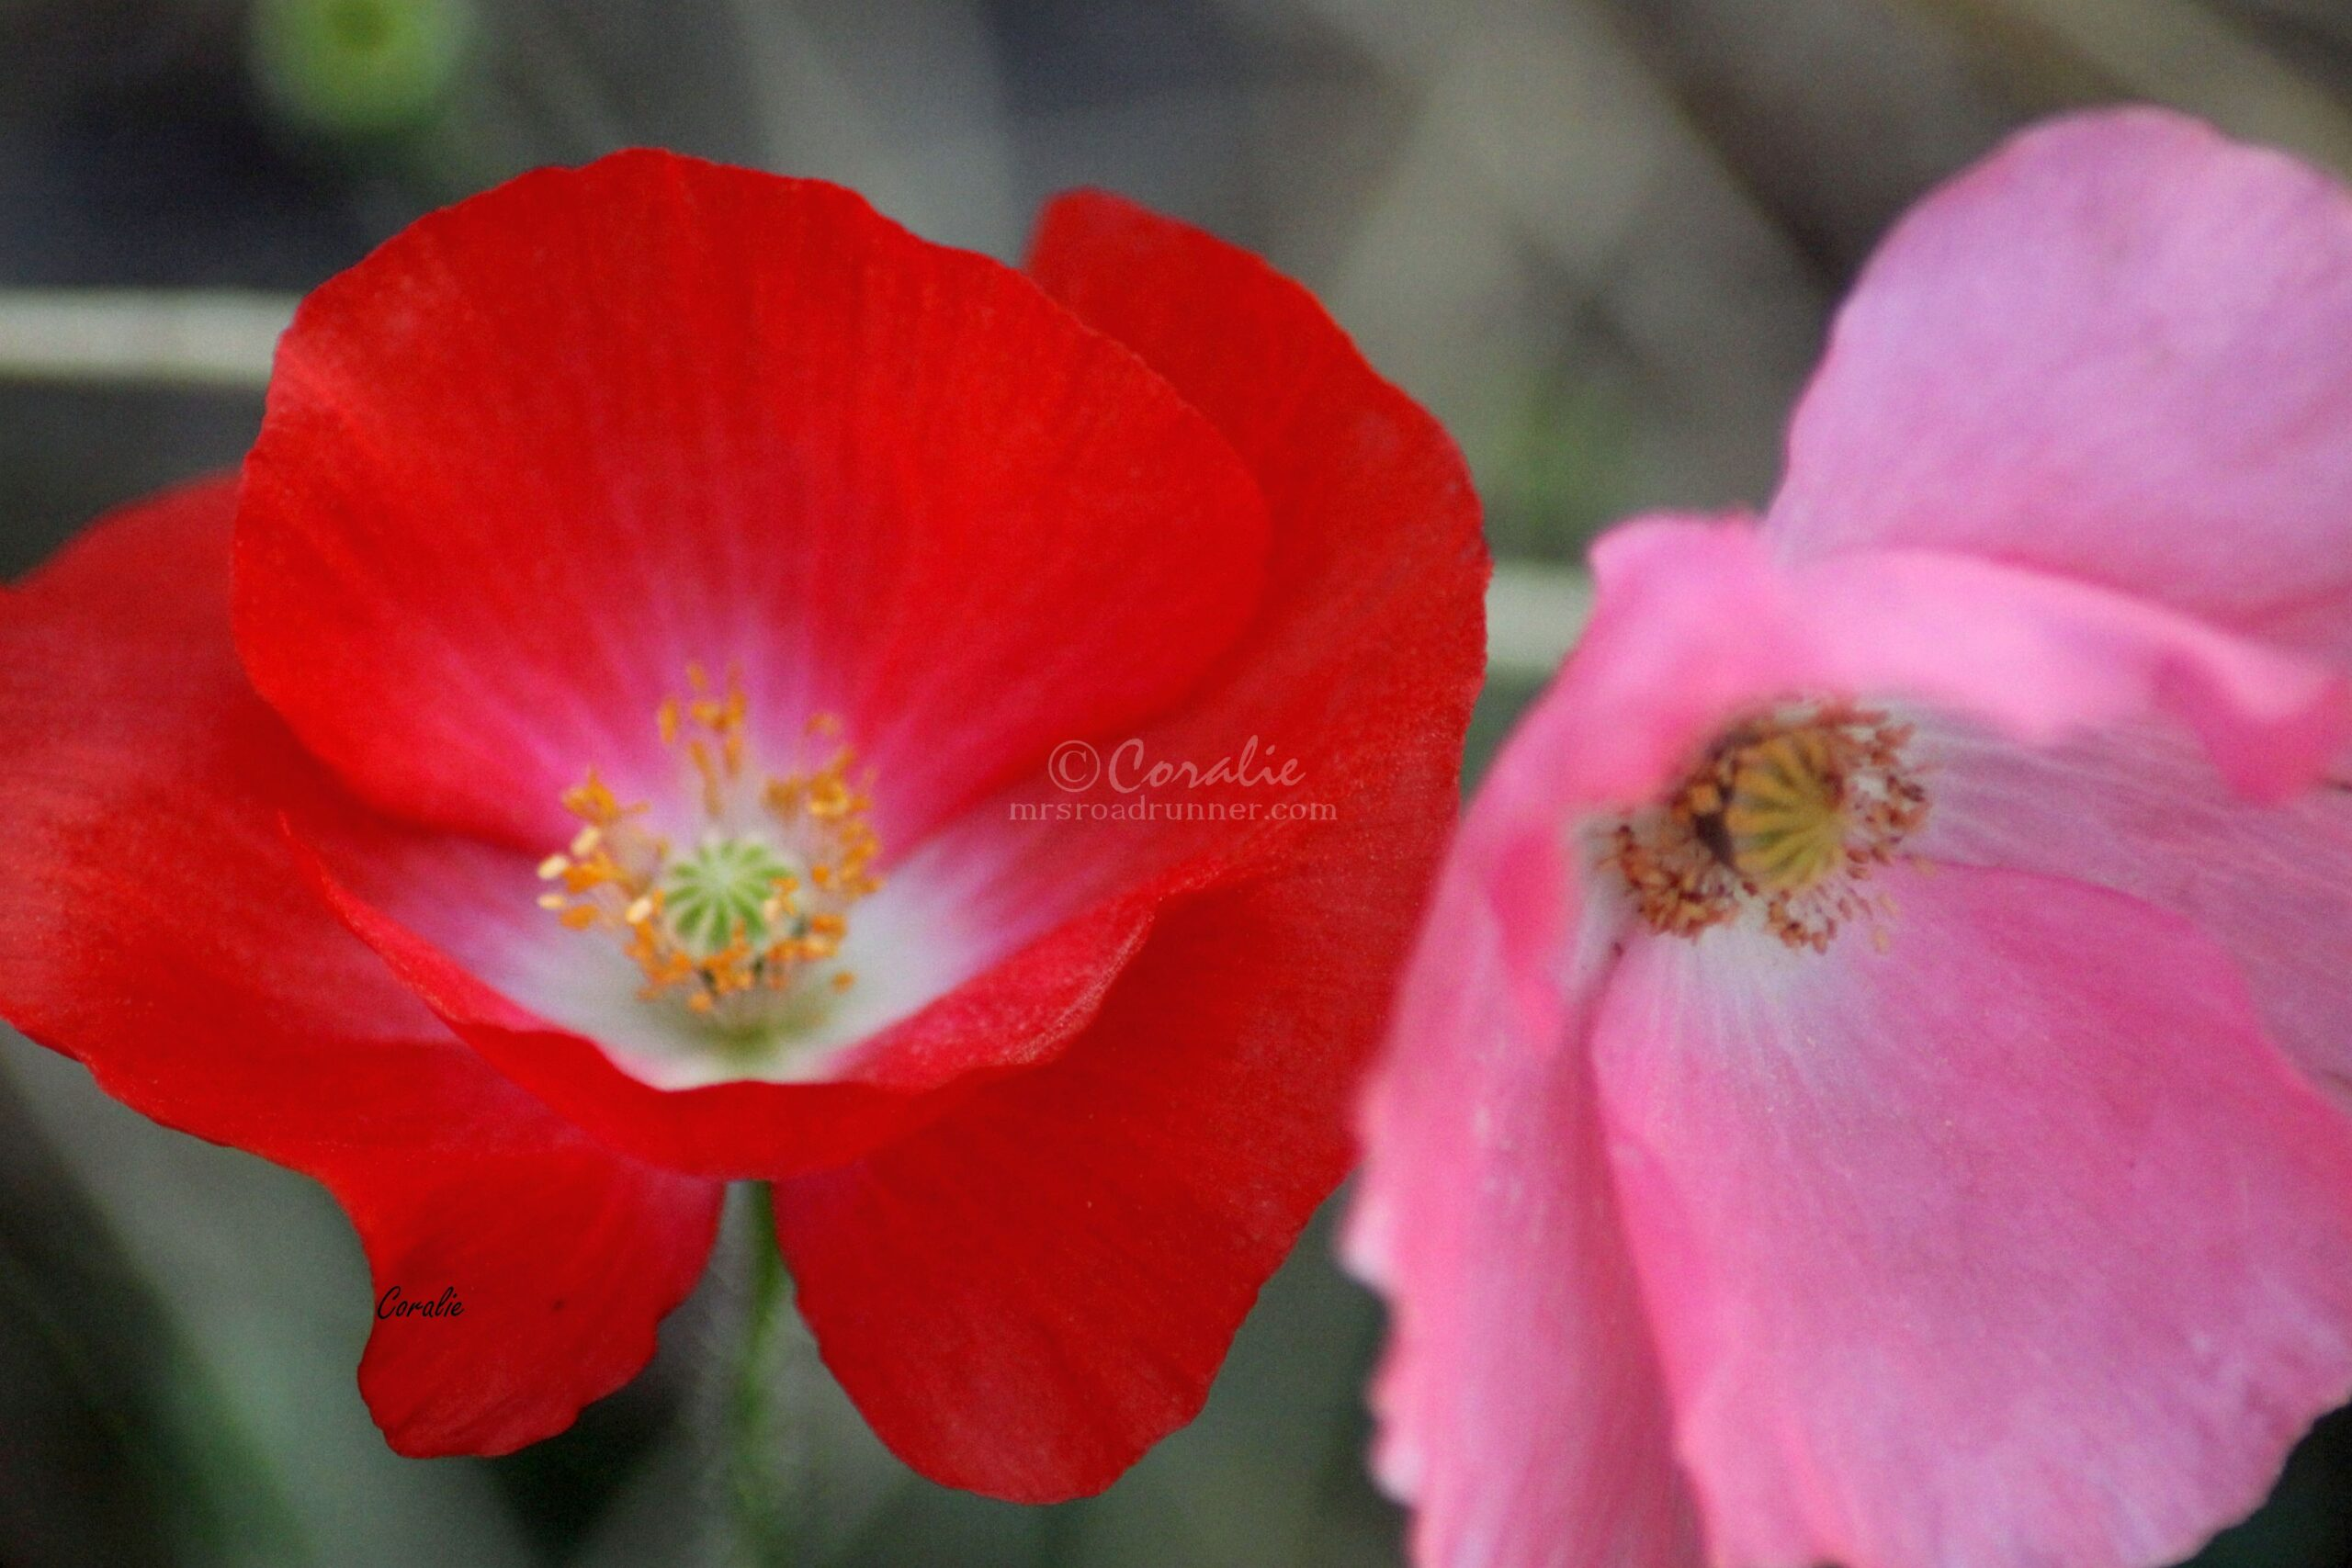 Colors of the Poppy Flowers 315